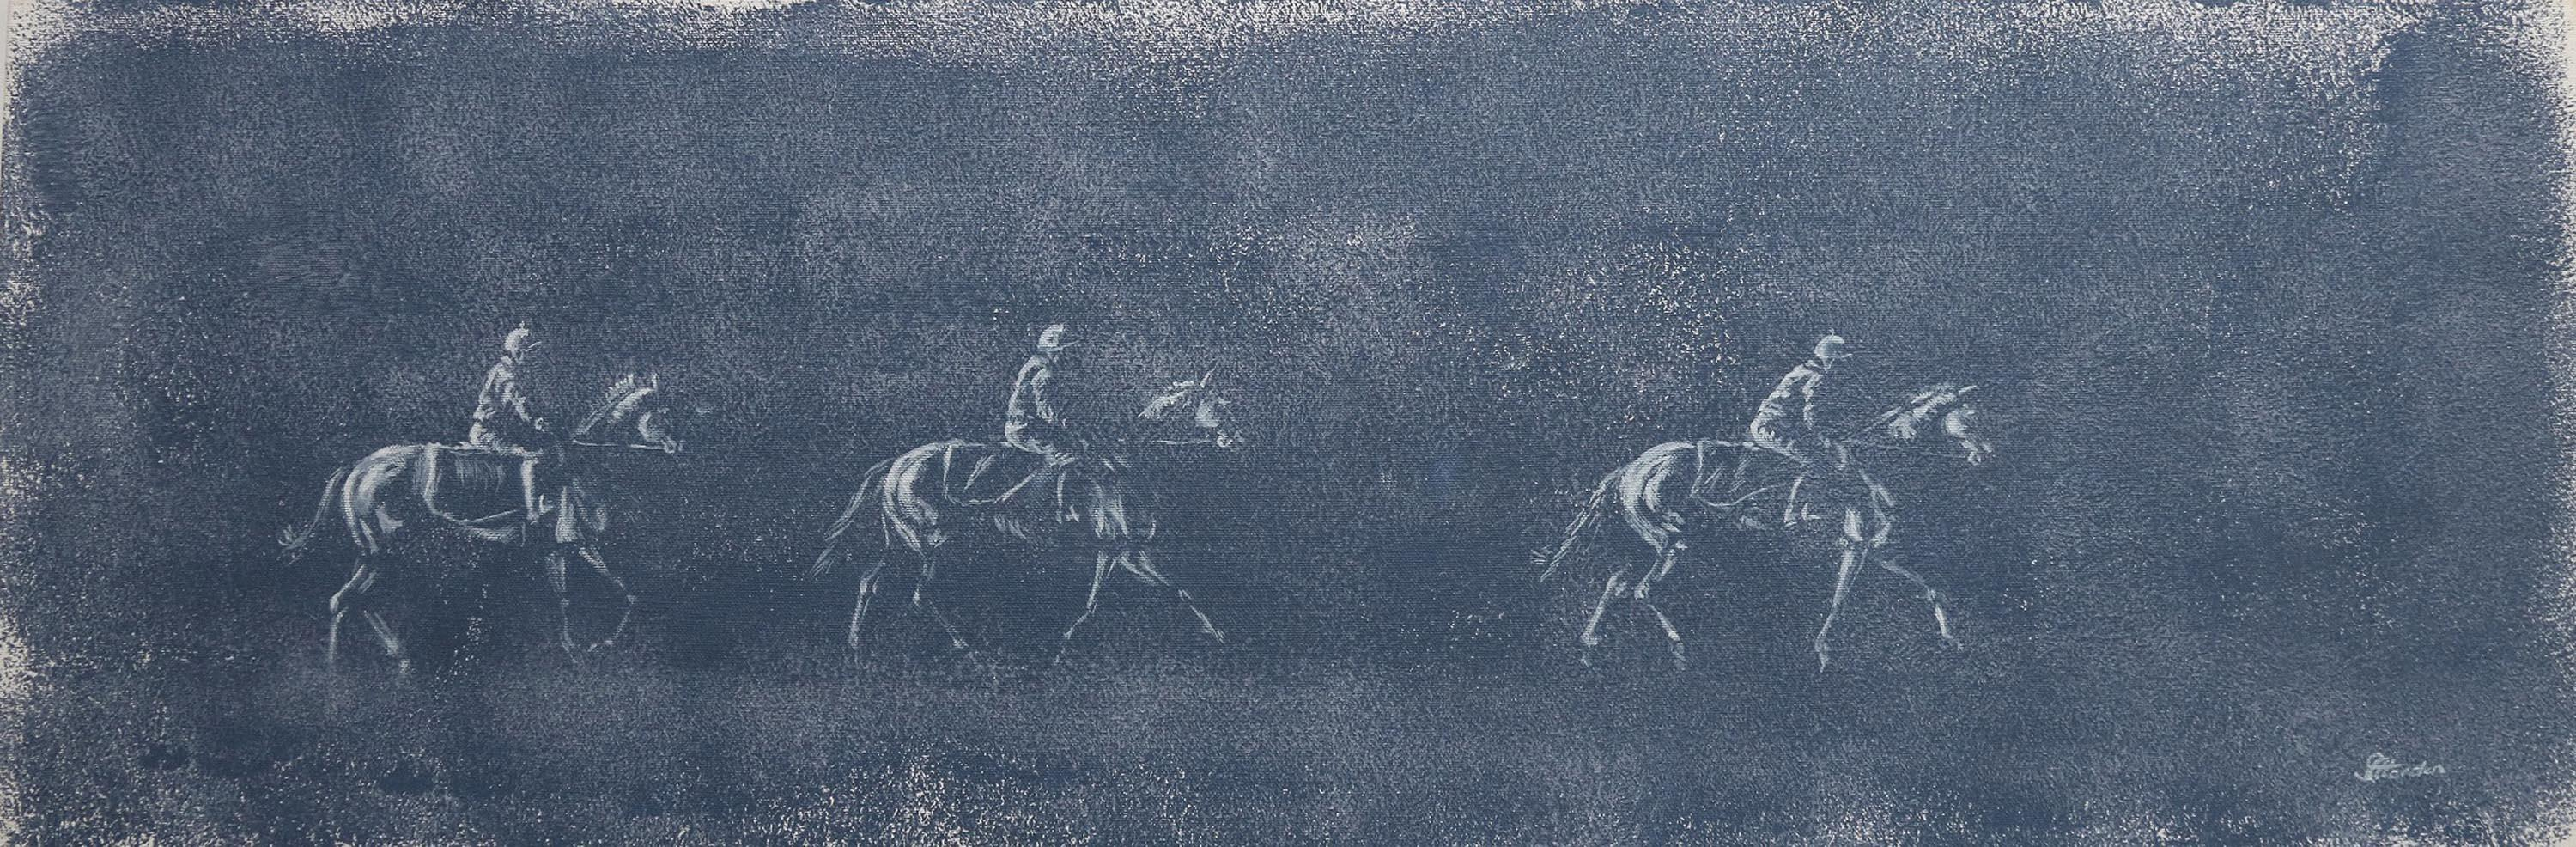 The Morning Parade, Equine Art, Limited Edition Print, Horse Art, Sophie Harden